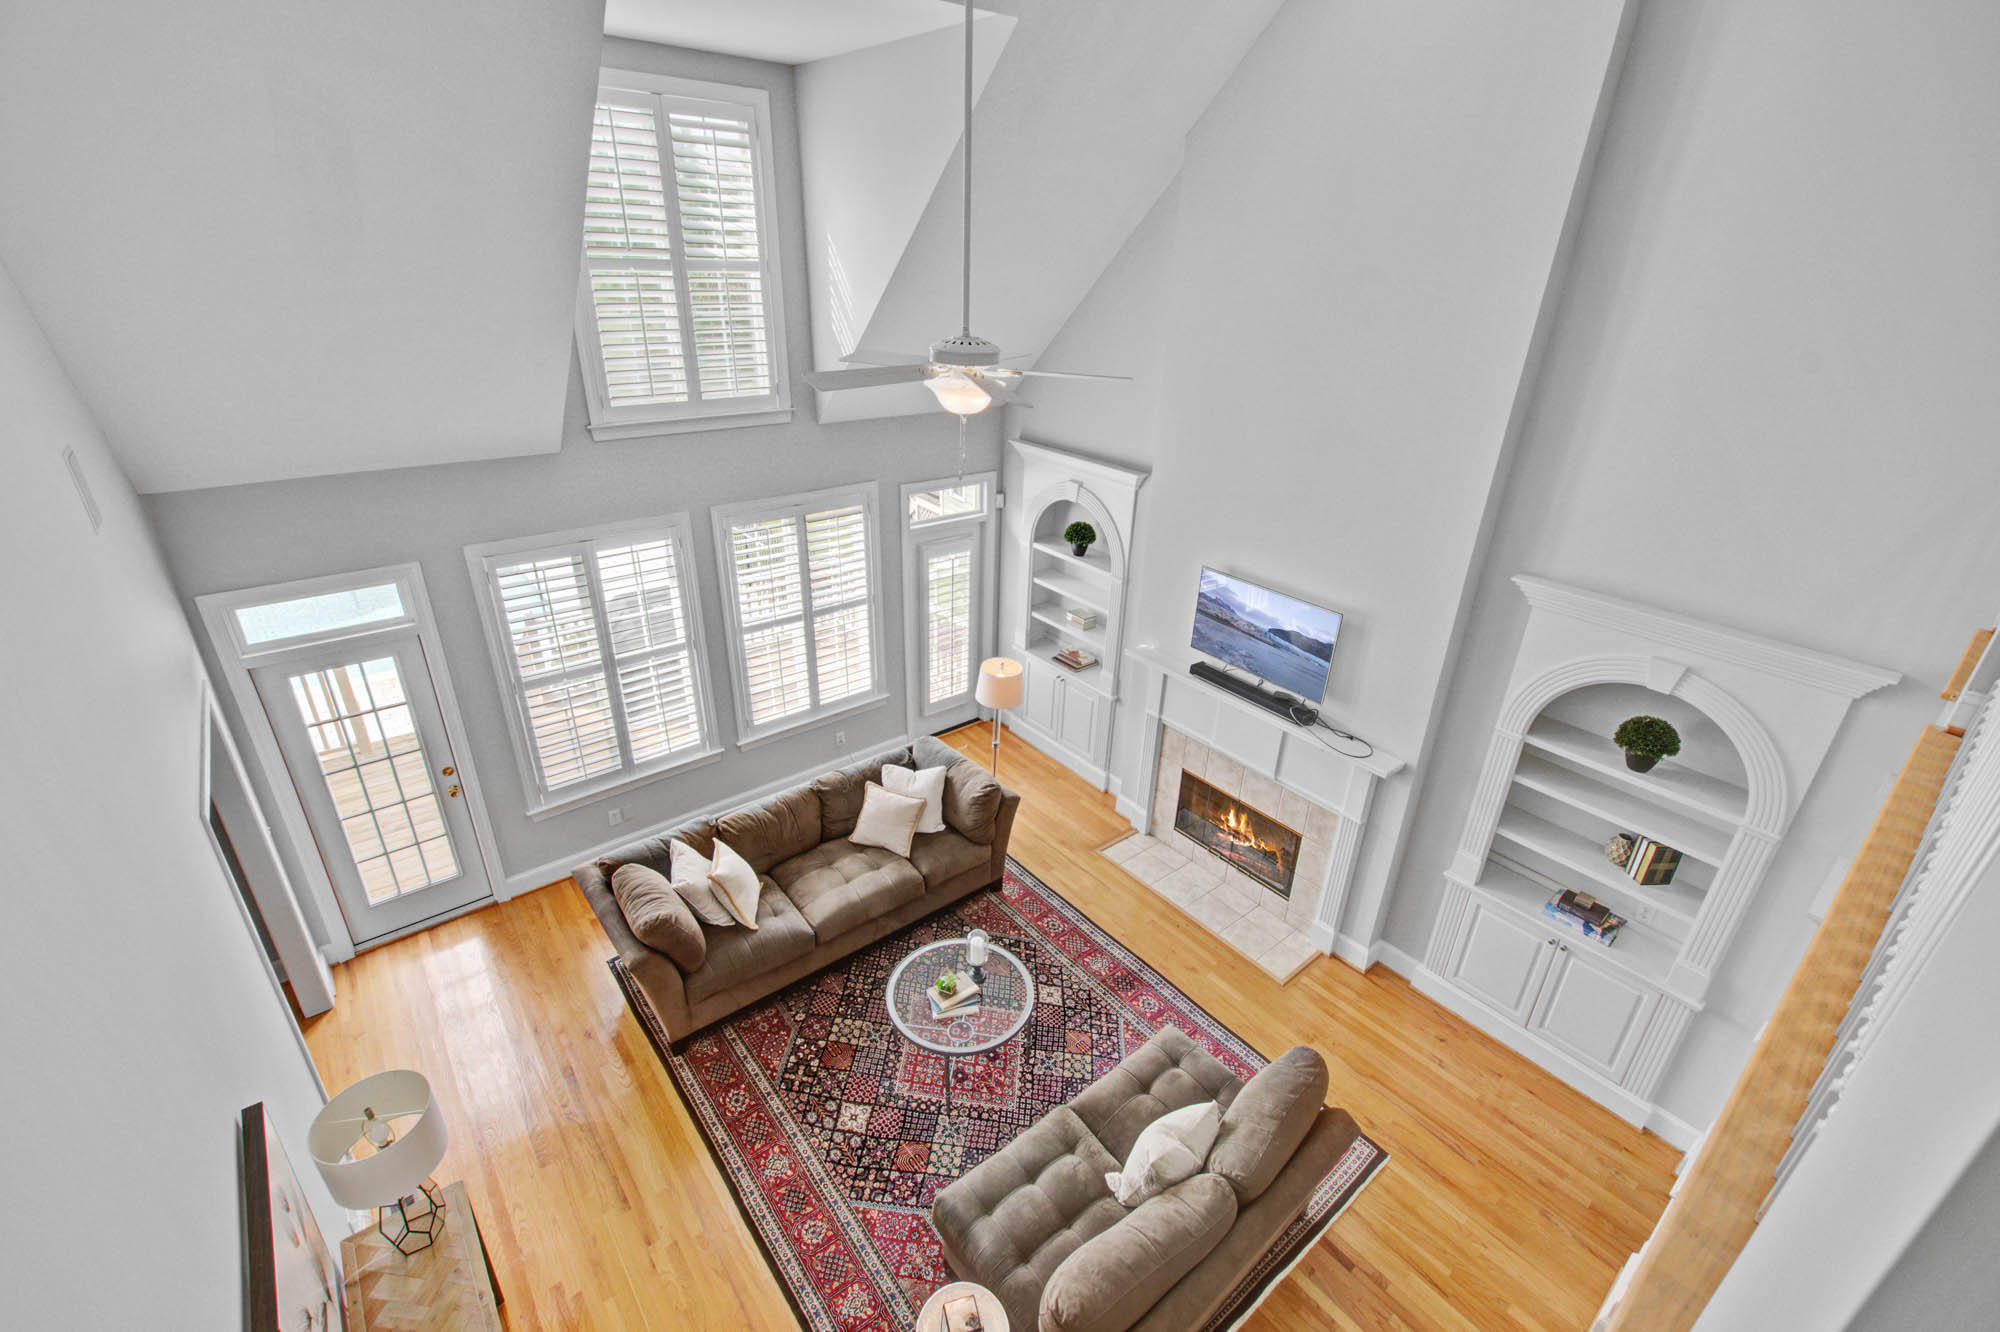 Dunes West Homes For Sale - 2069 Shell Ring, Mount Pleasant, SC - 28